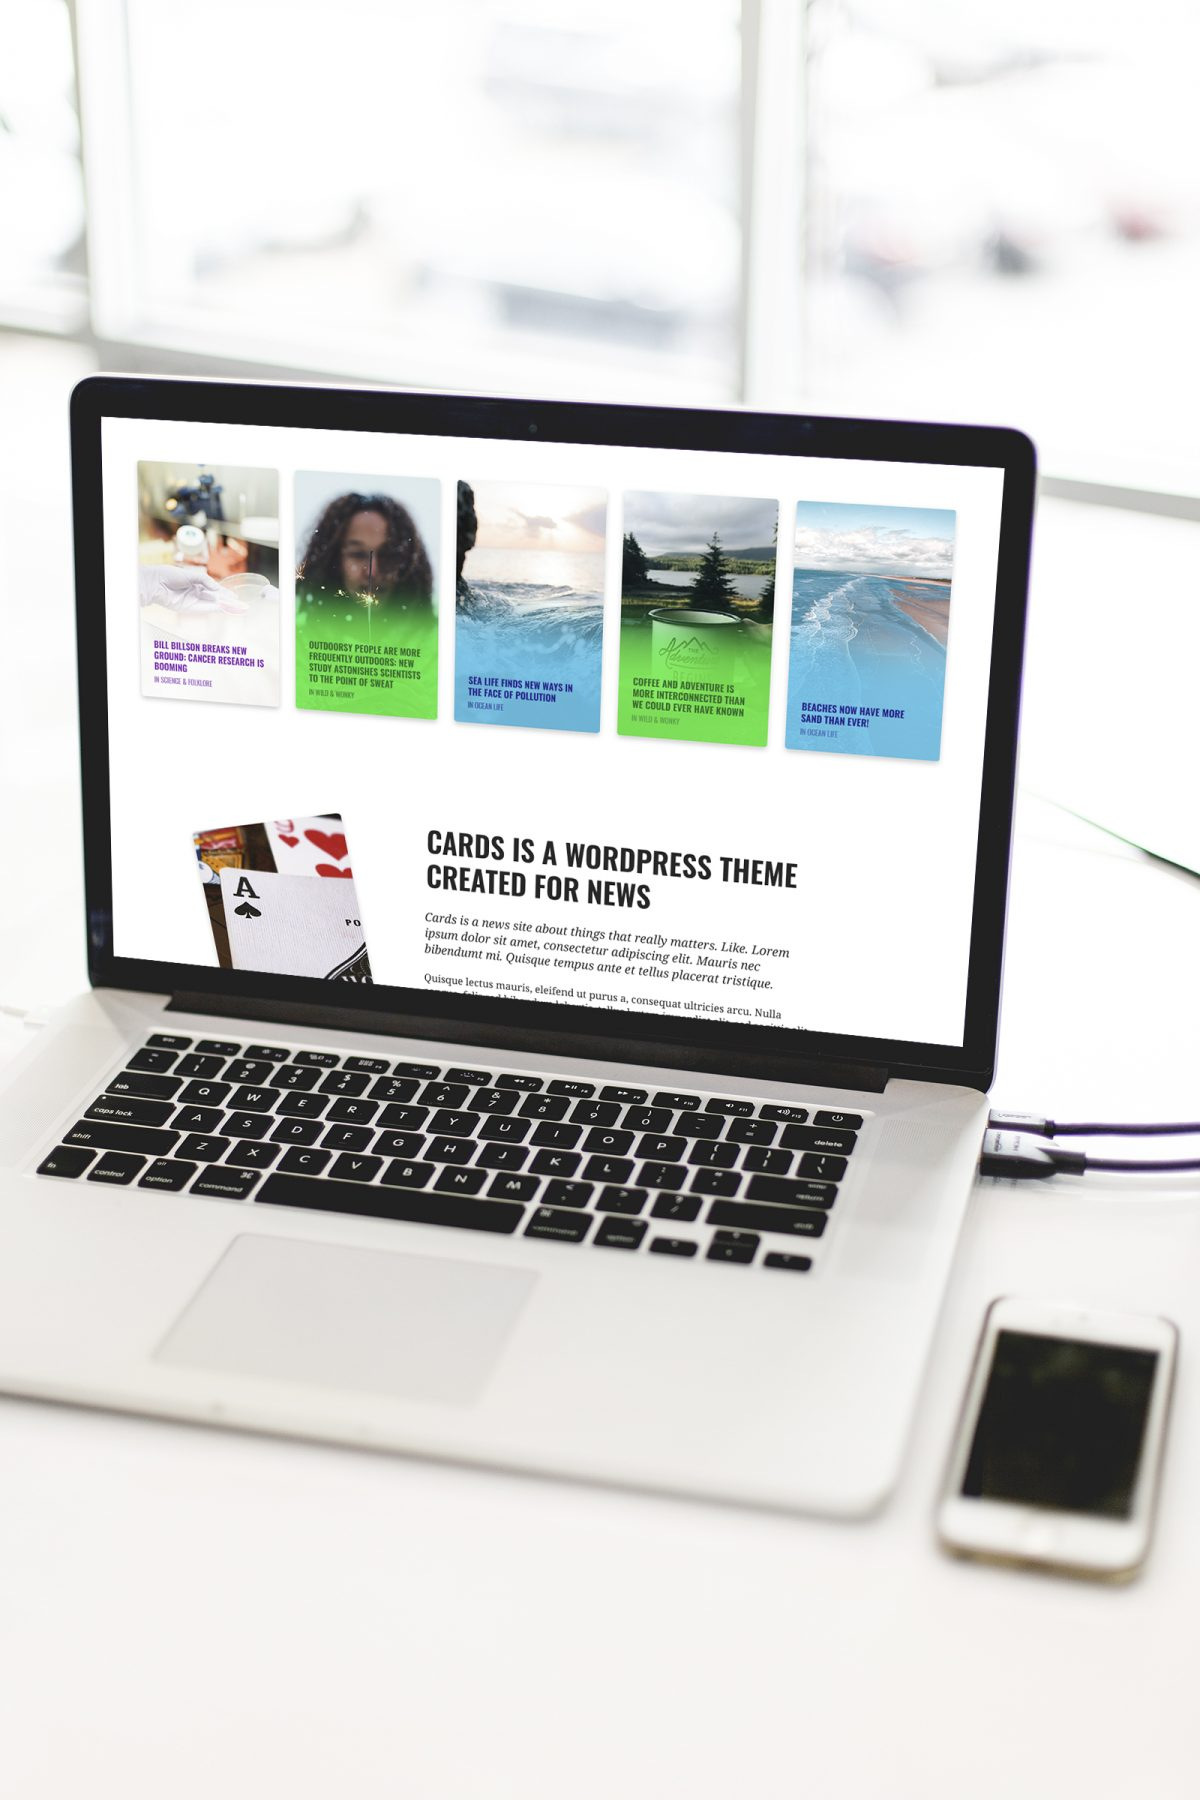 Cards WordPress Theme, a theme with news and blogging in focus, featuring distinctly colored categories.